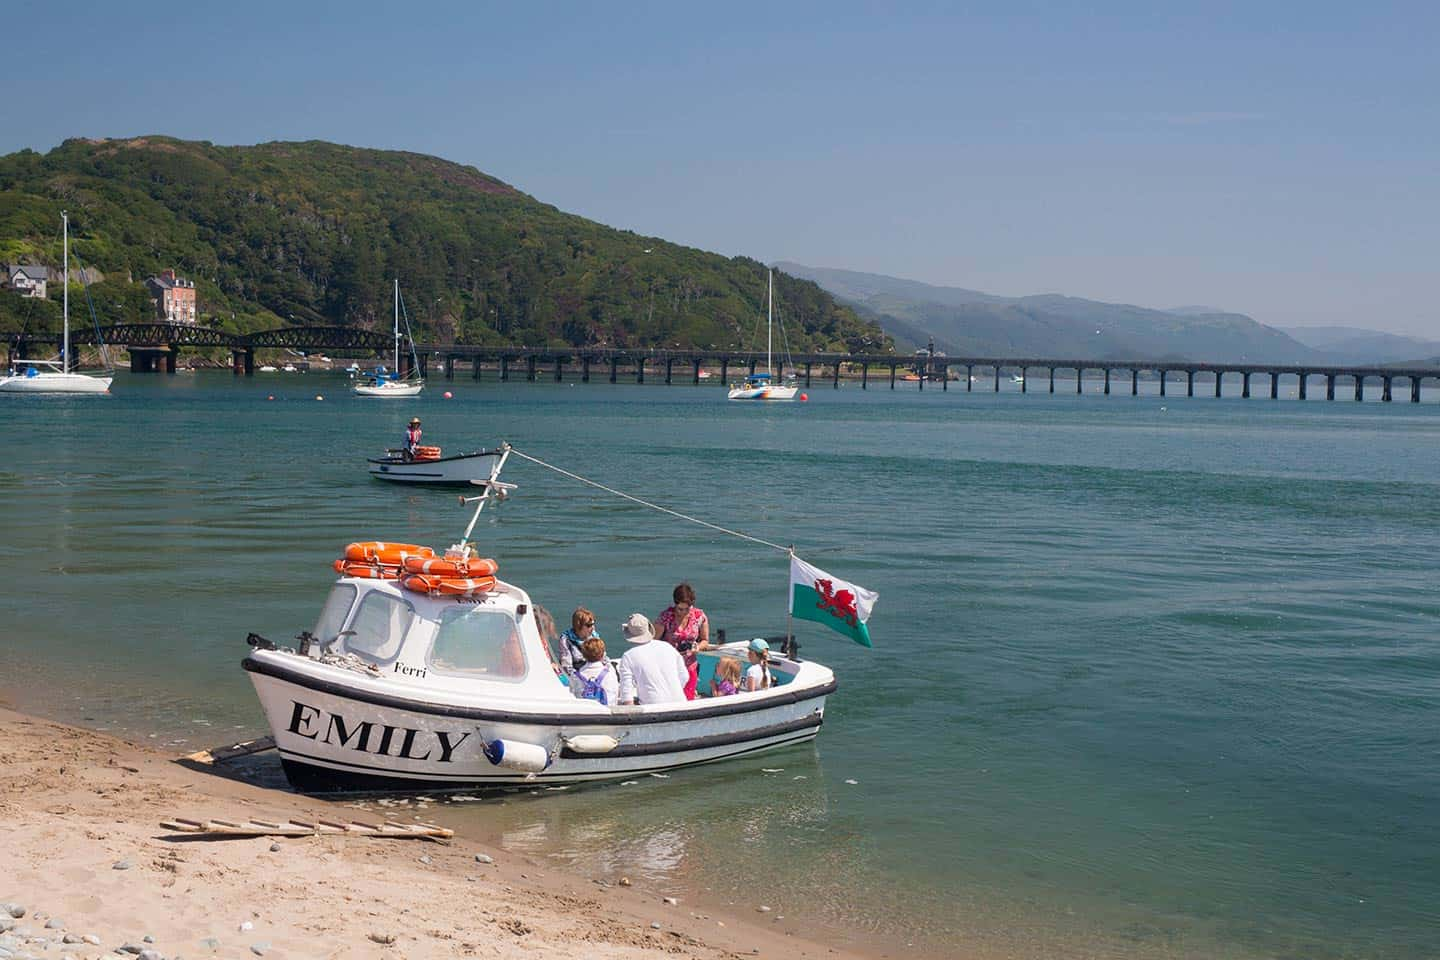 Image of the Barmouth ferry on the river